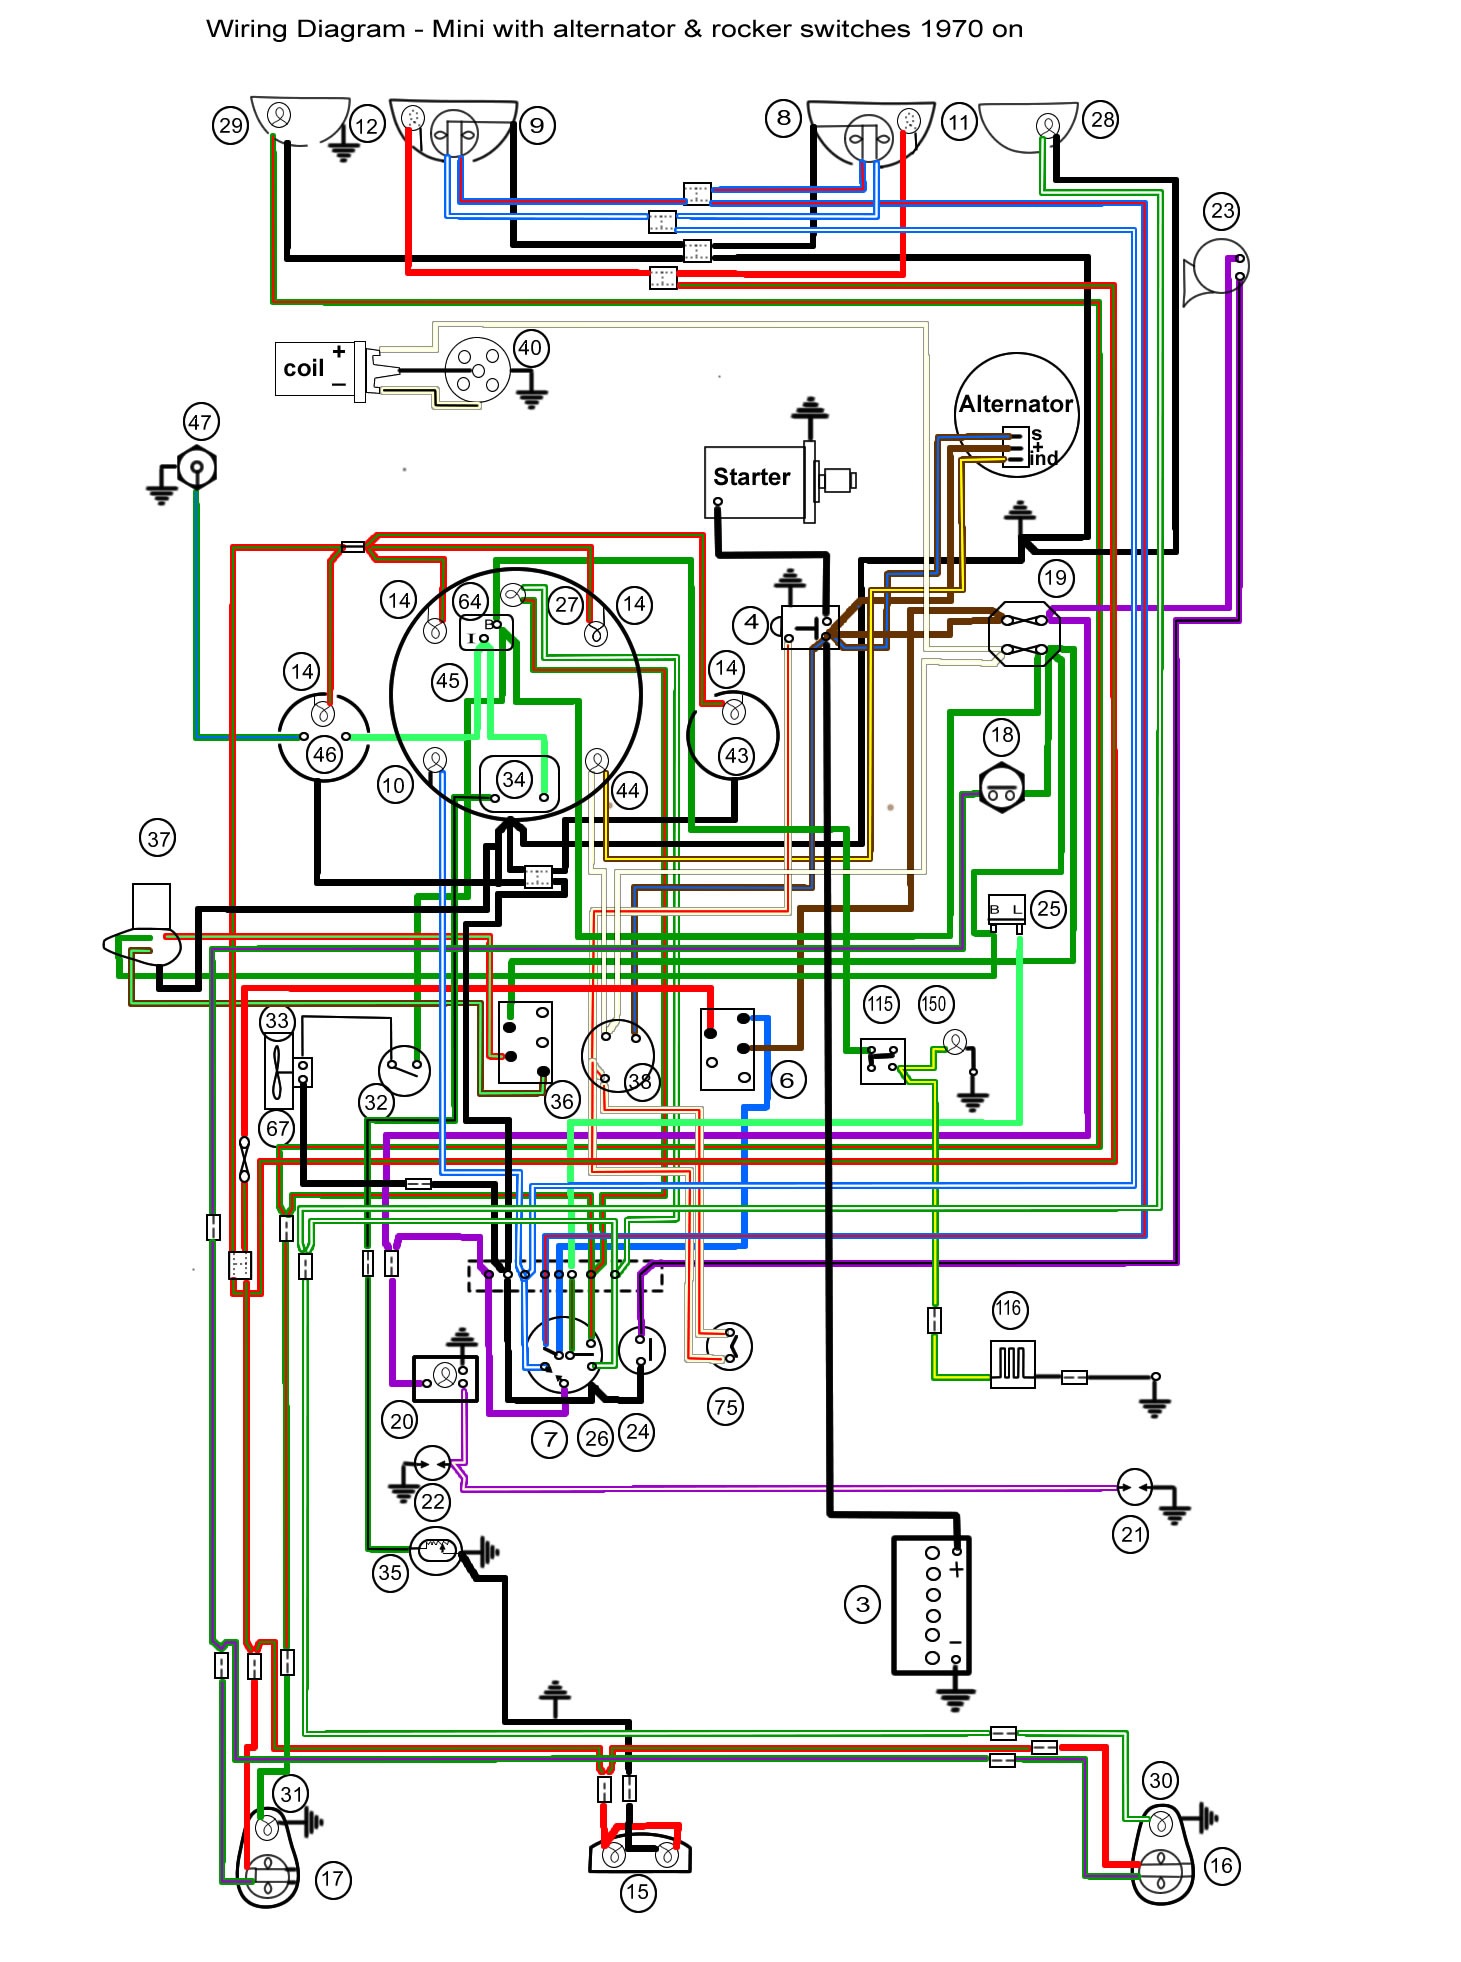 Mini Cooper S Wiring Diagram Archive Of Automotive Wellcraft Schematics Diagrams Control U2022 Rh Pakistannews Co 2005 Radio